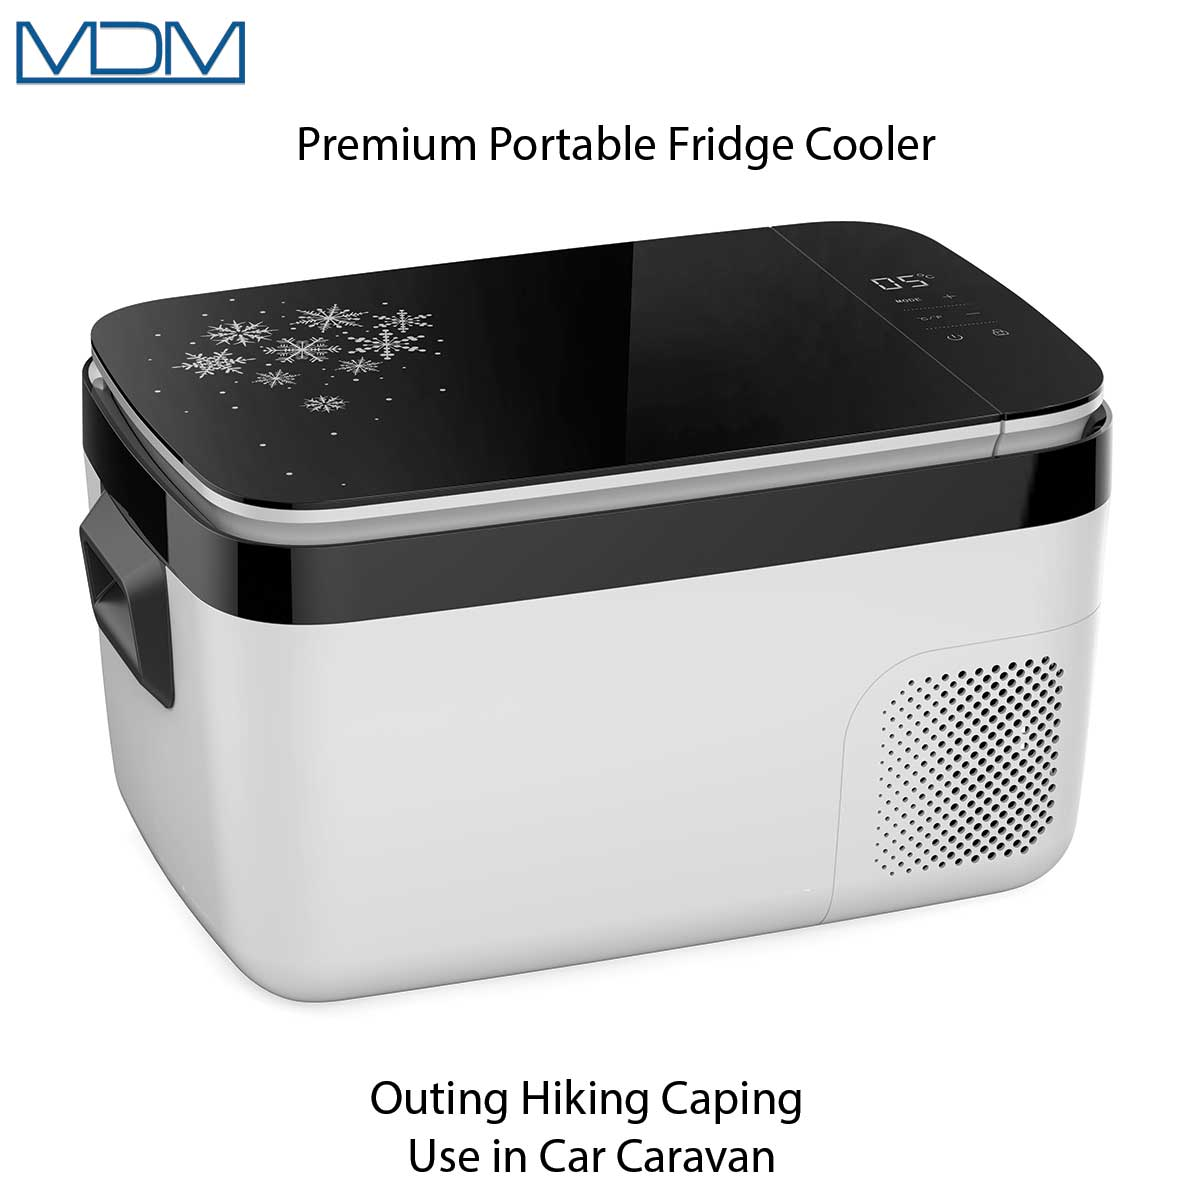 Premium Portable Fridge Cooler Outing Hiking Caping Use in Car Caravan 25LAimex - MDMAustralian